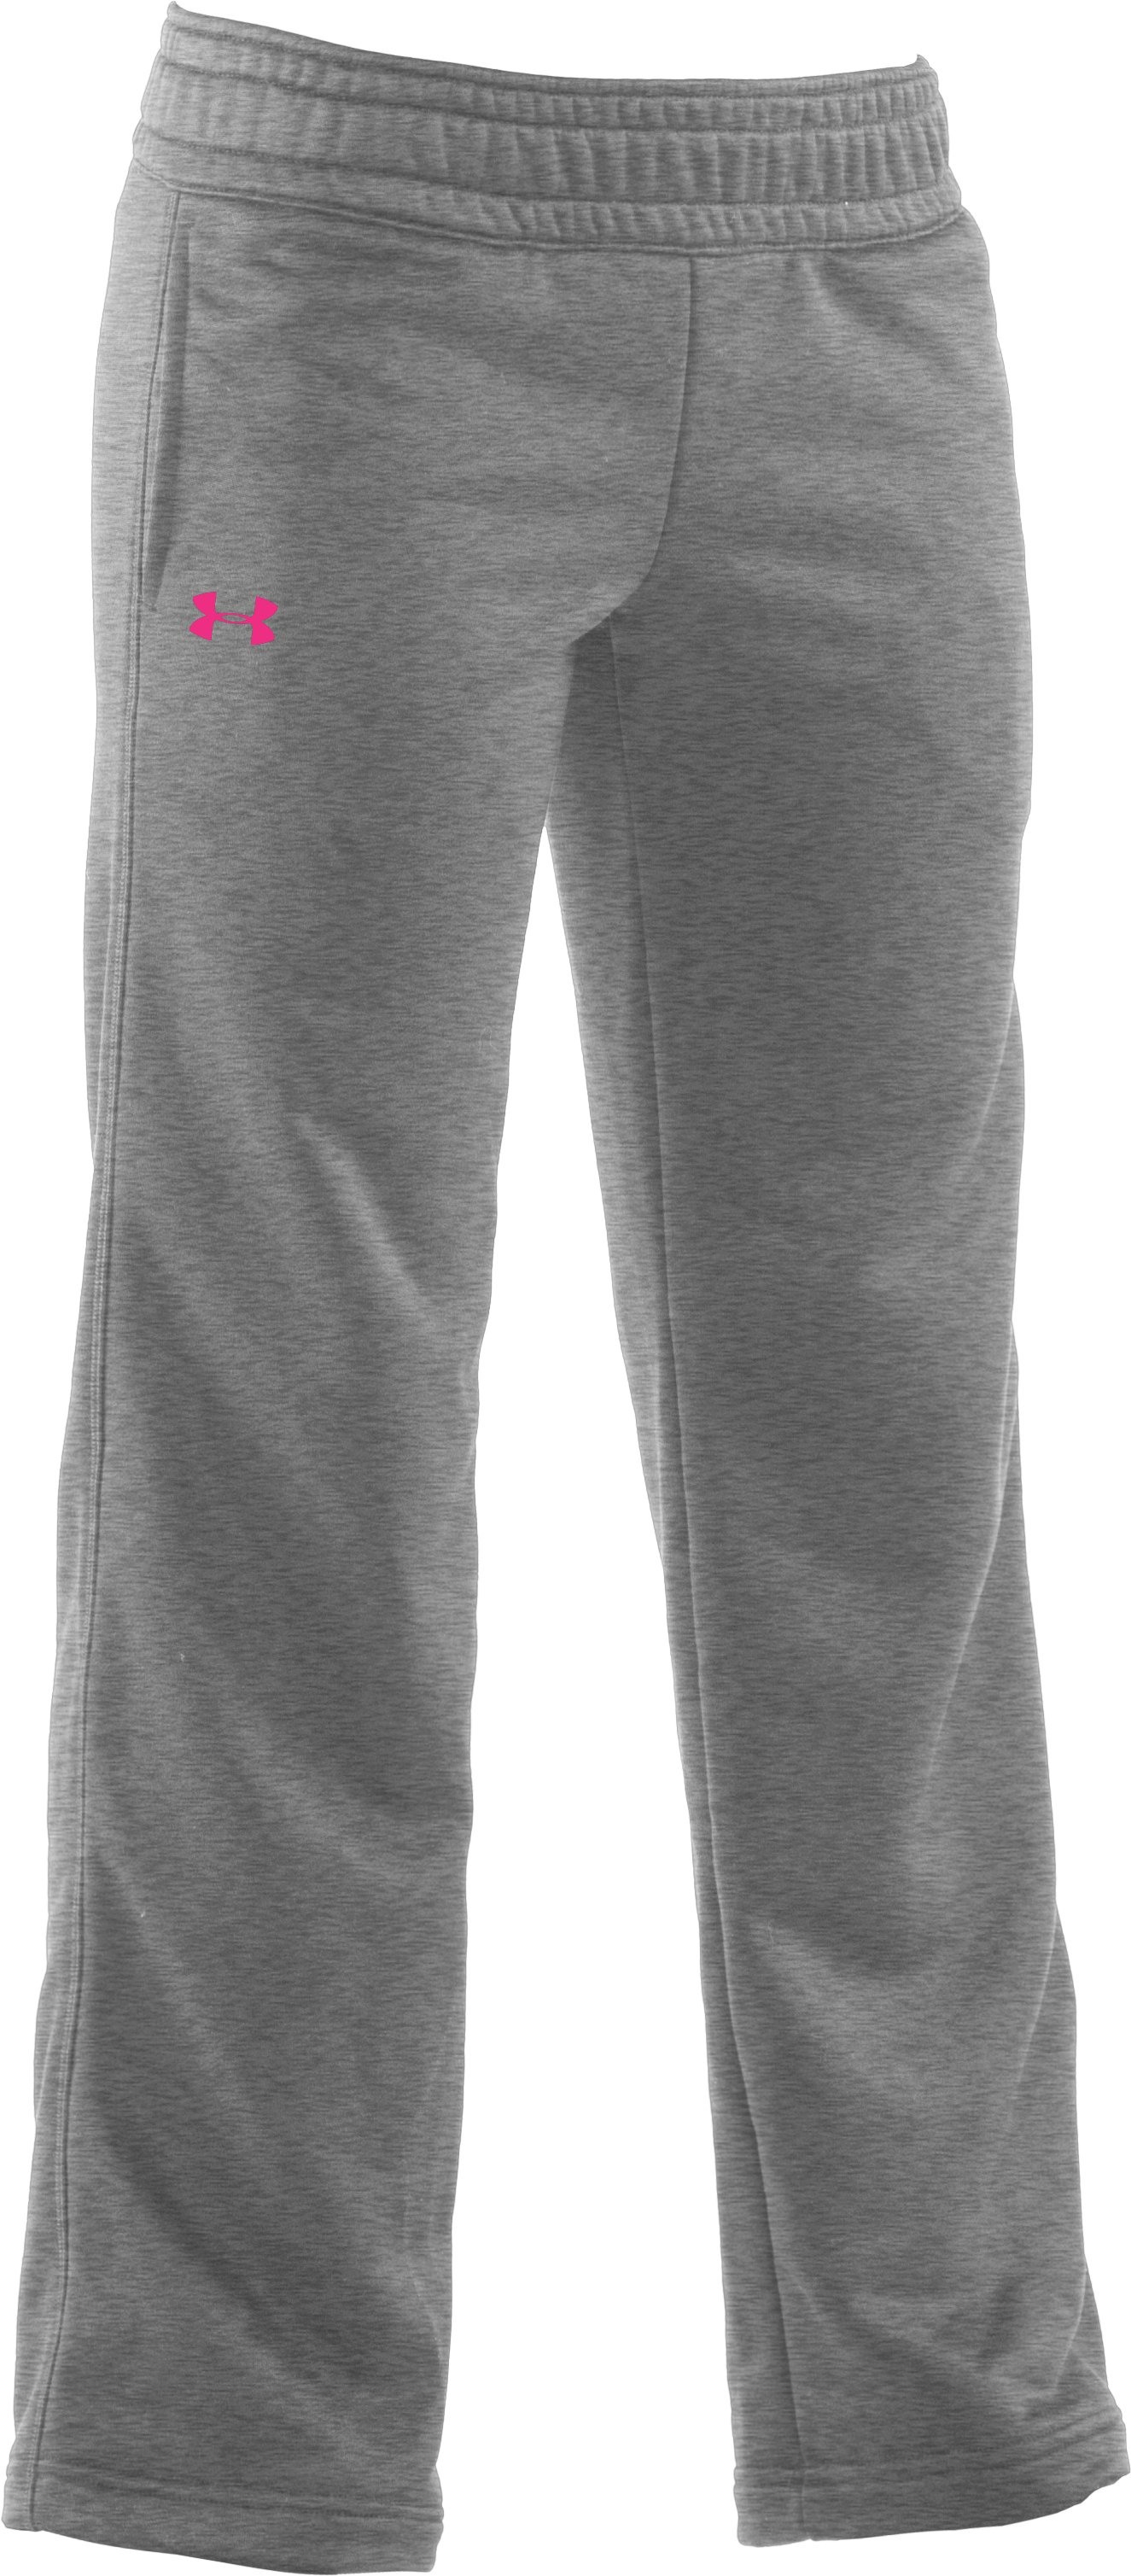 Girls' Armour® Fleece Pant, True Gray Heather